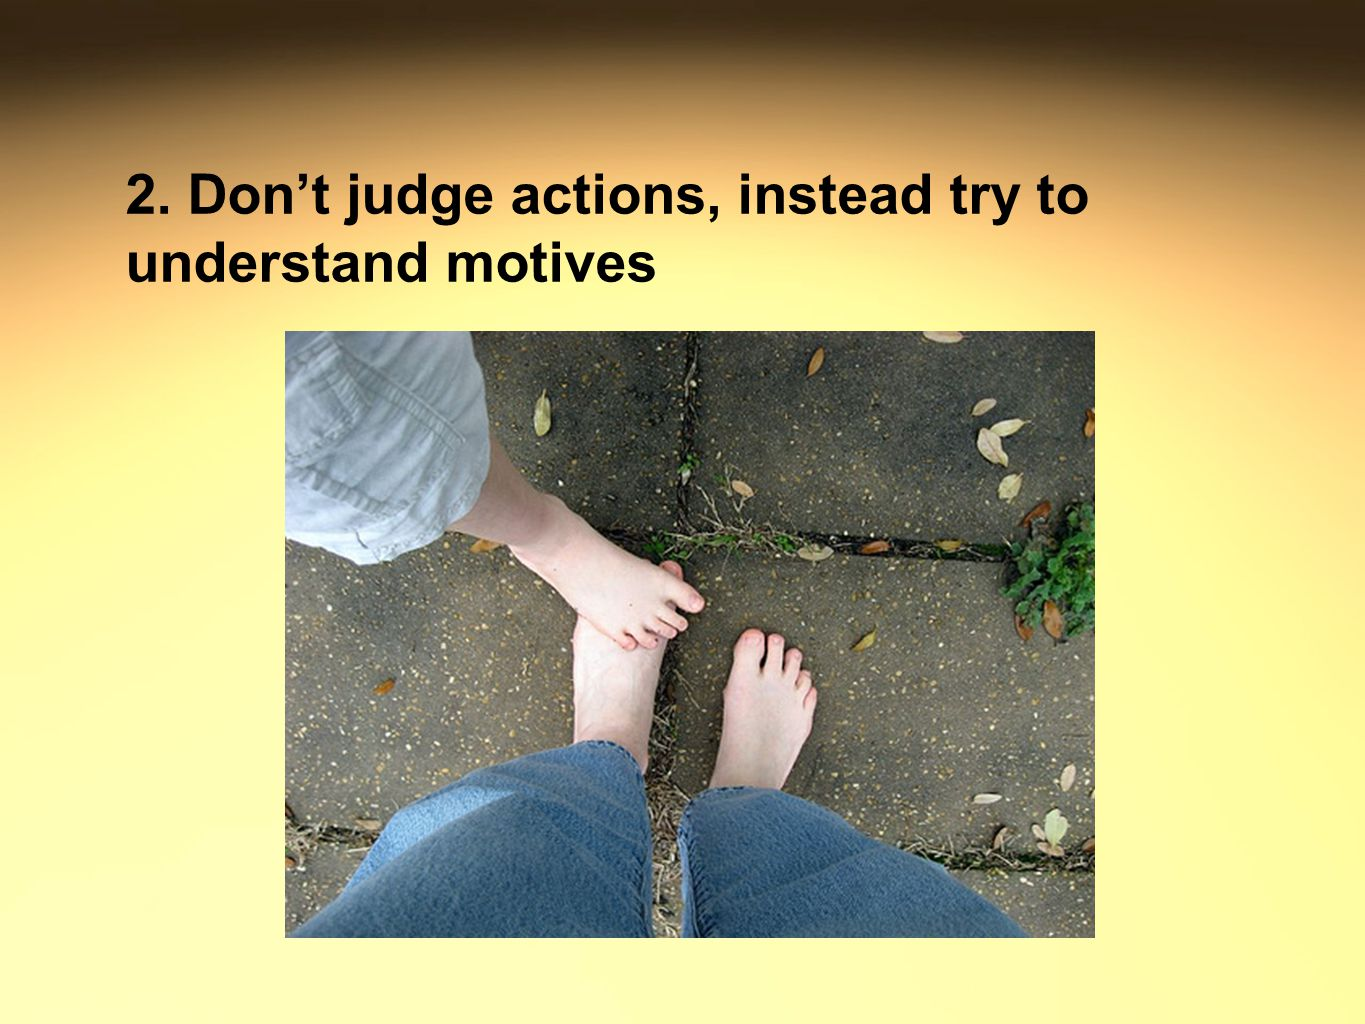 2. Don't judge actions, instead try to understand motives